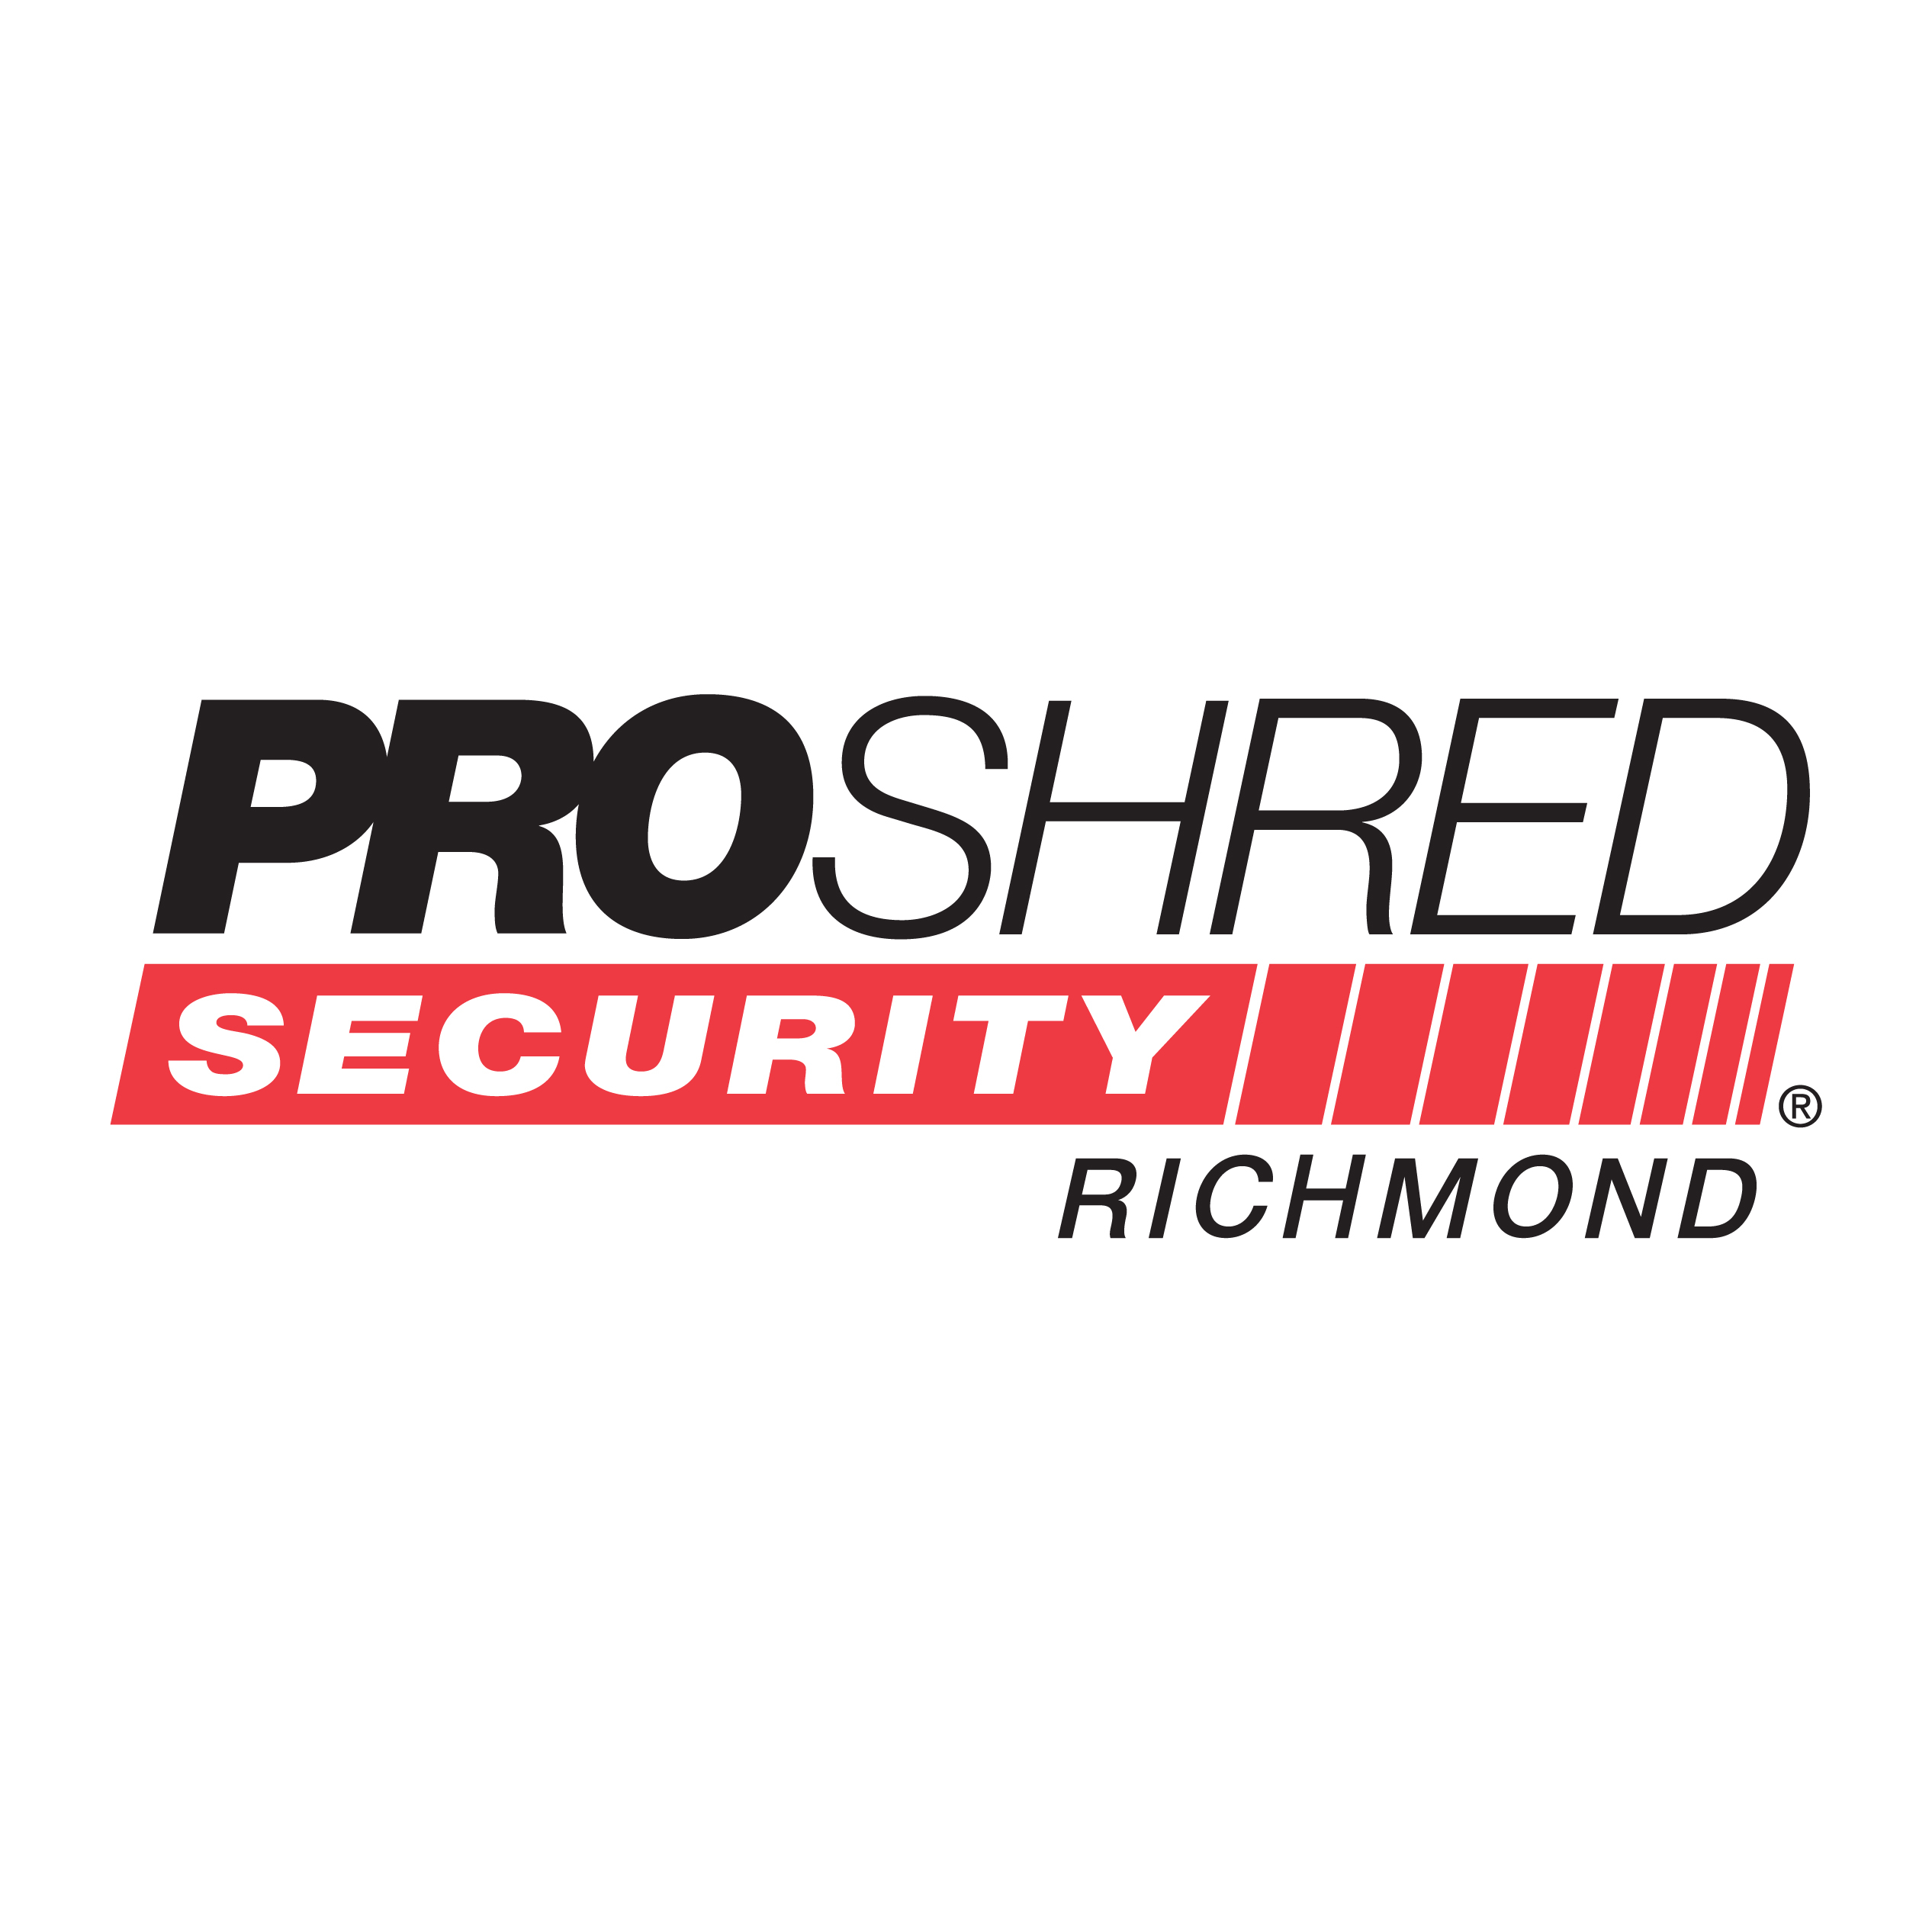 Proshredr richmond coupons near me in richmond 8coupons for Document shredding richmond va